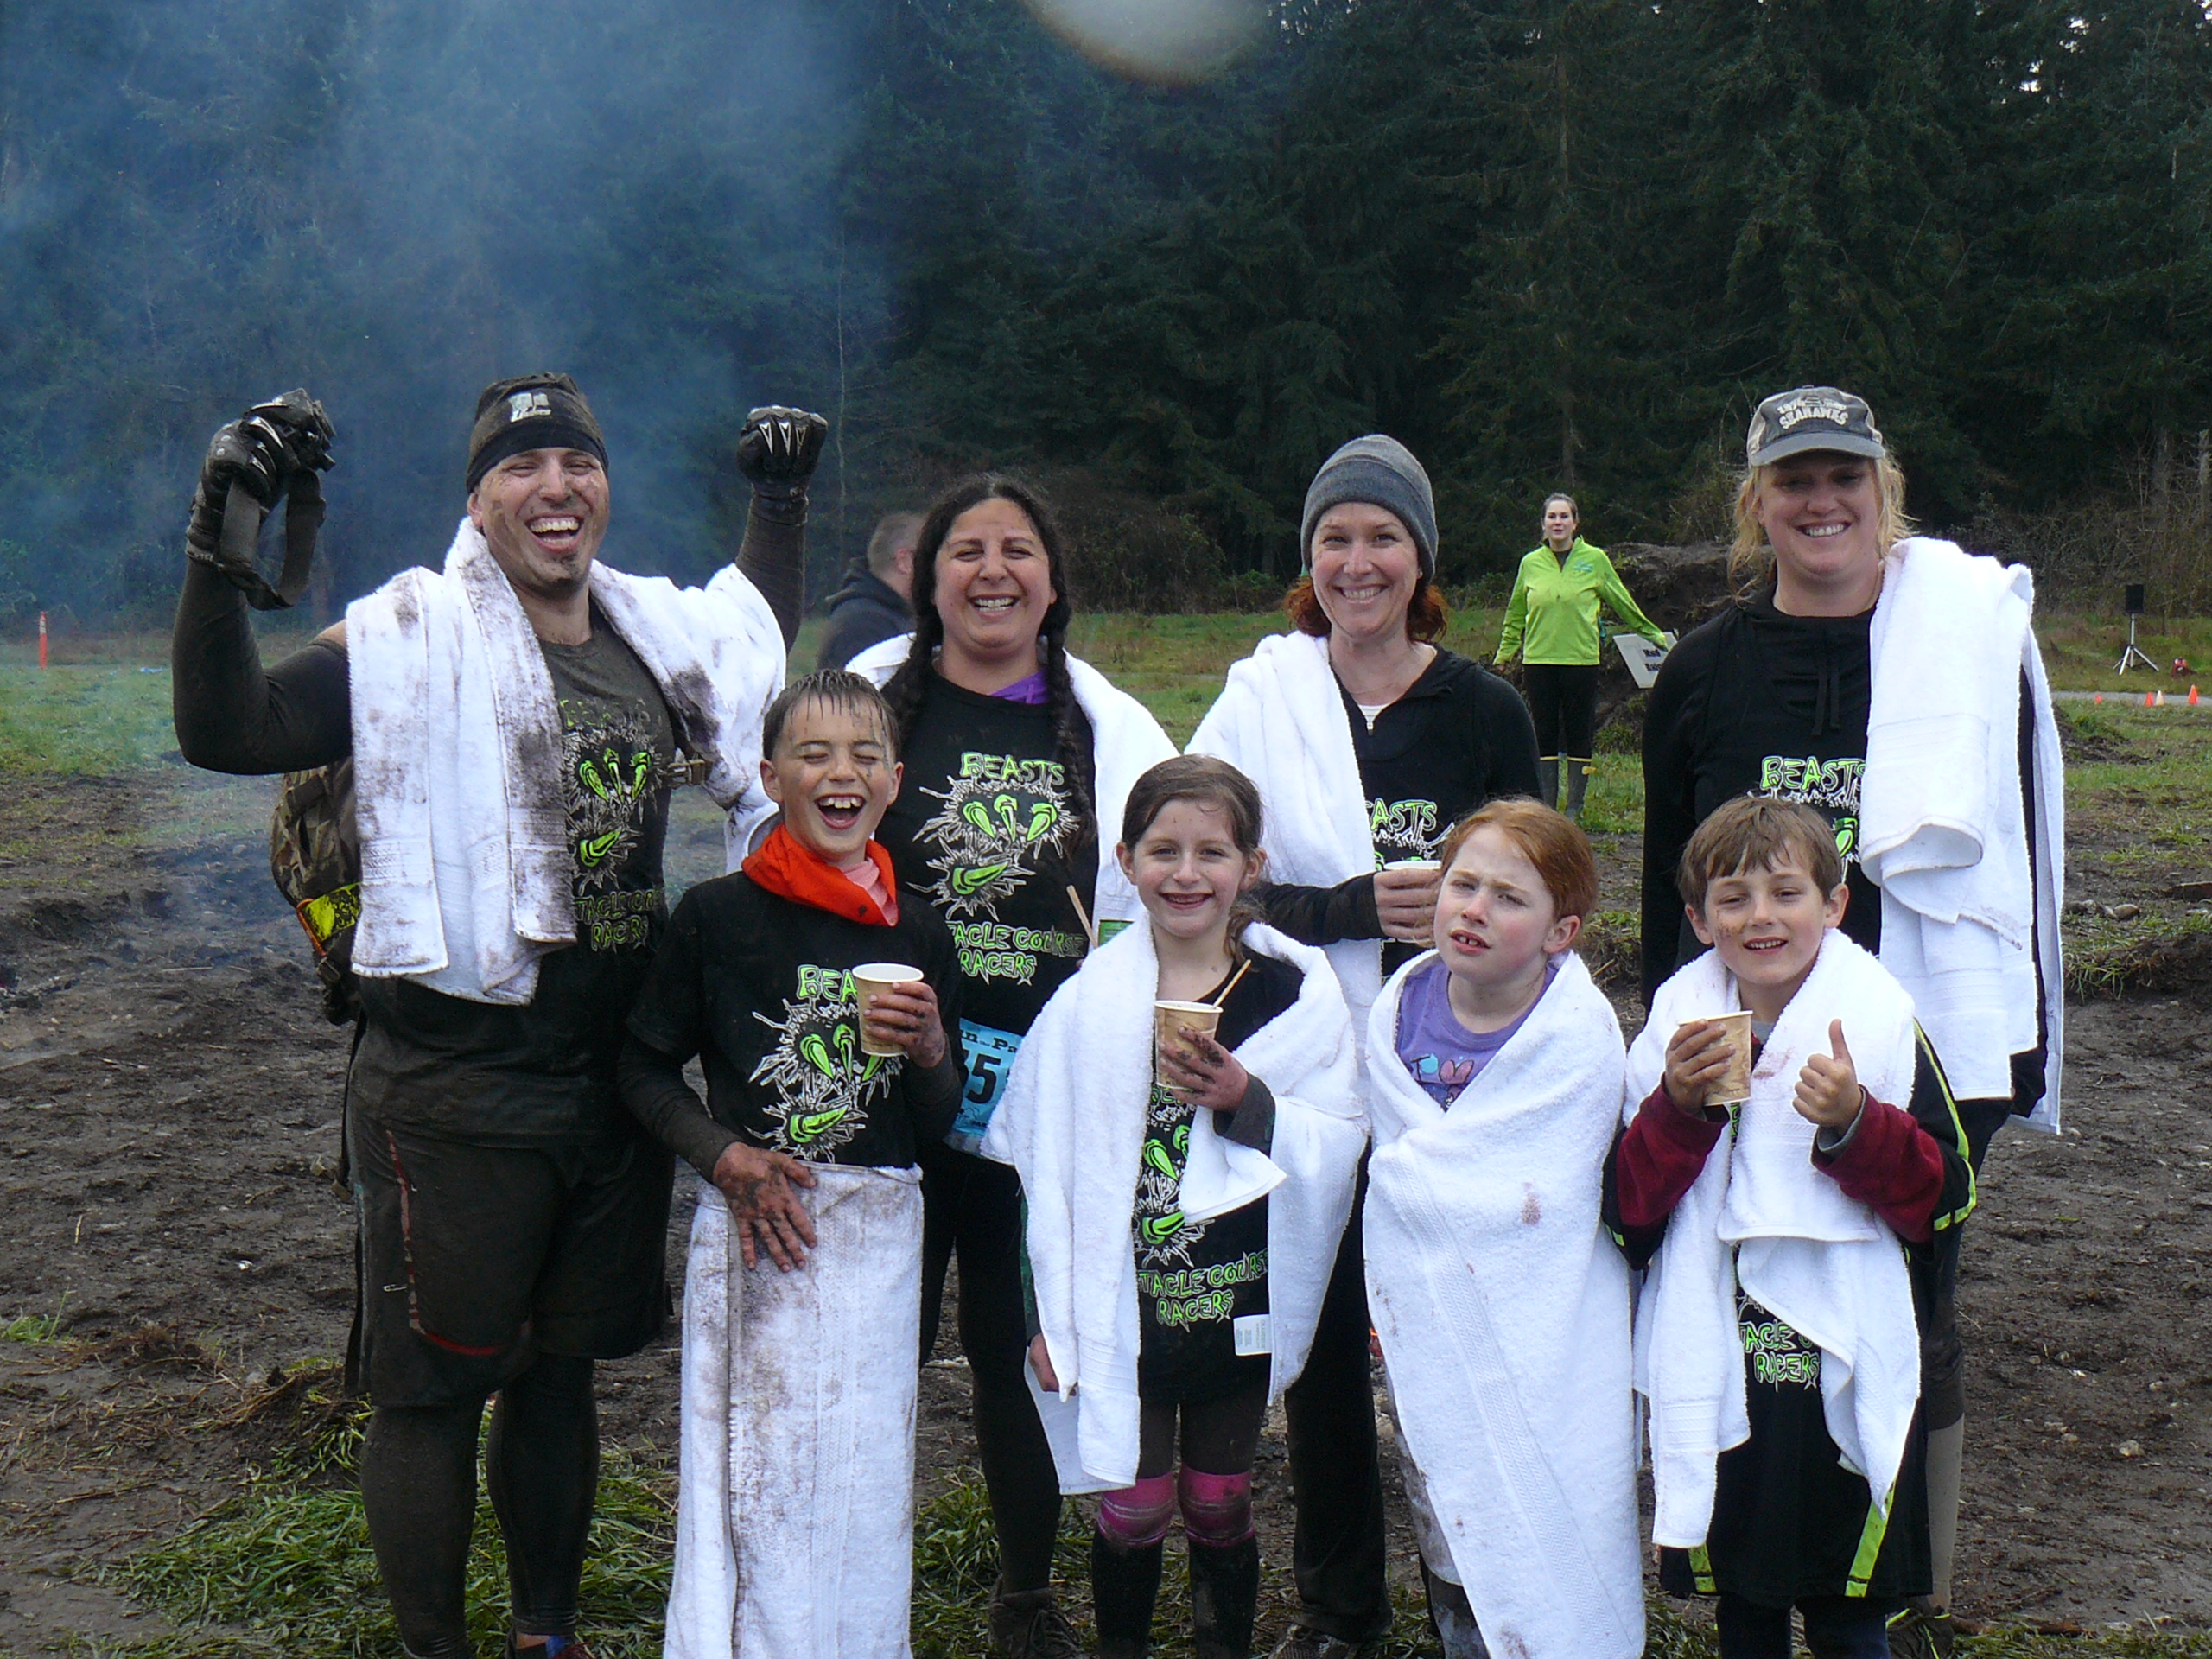 Tacoma Mud Run